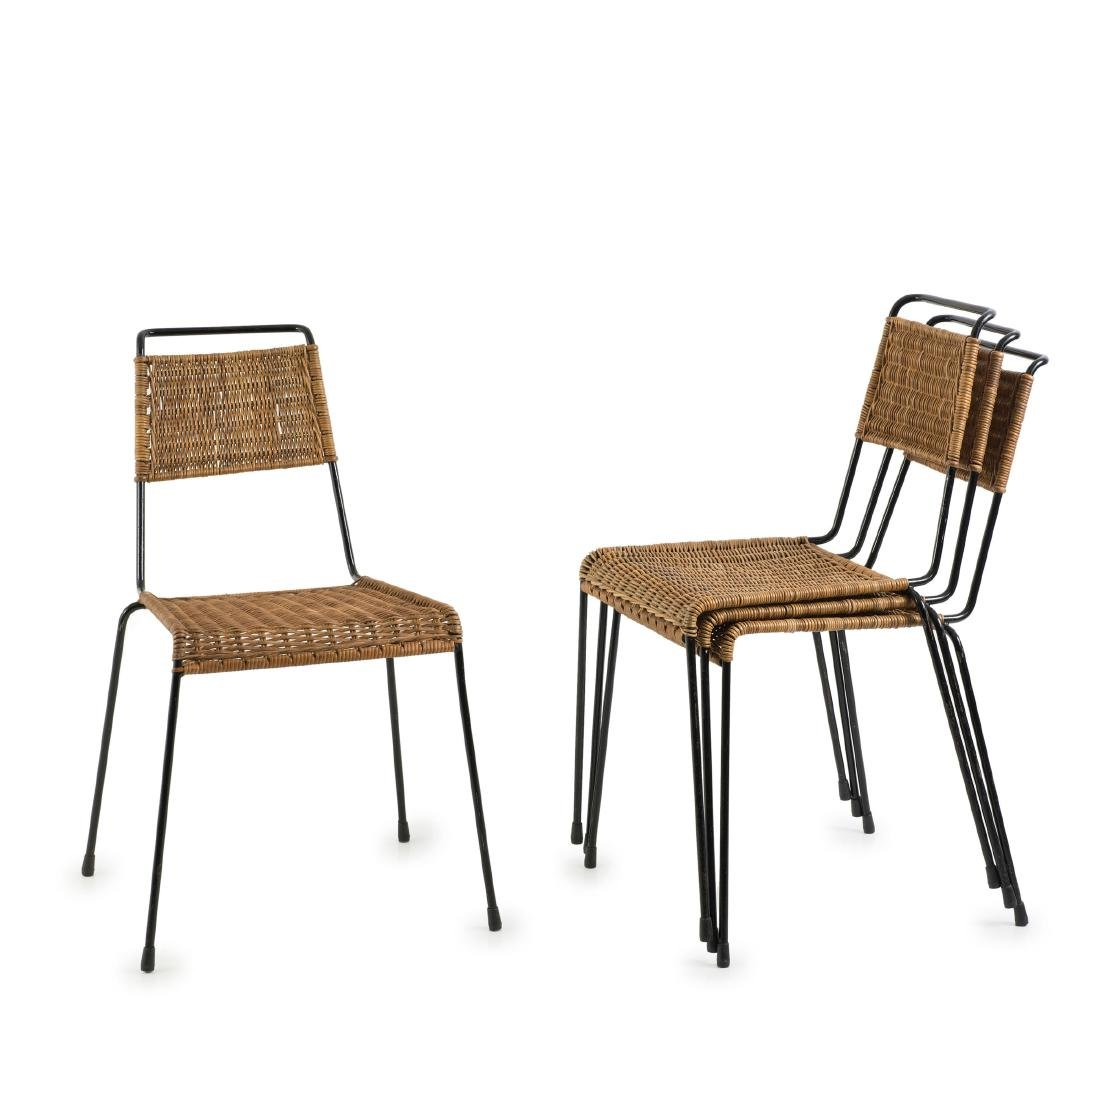 Four stacking chairs, c. 1955